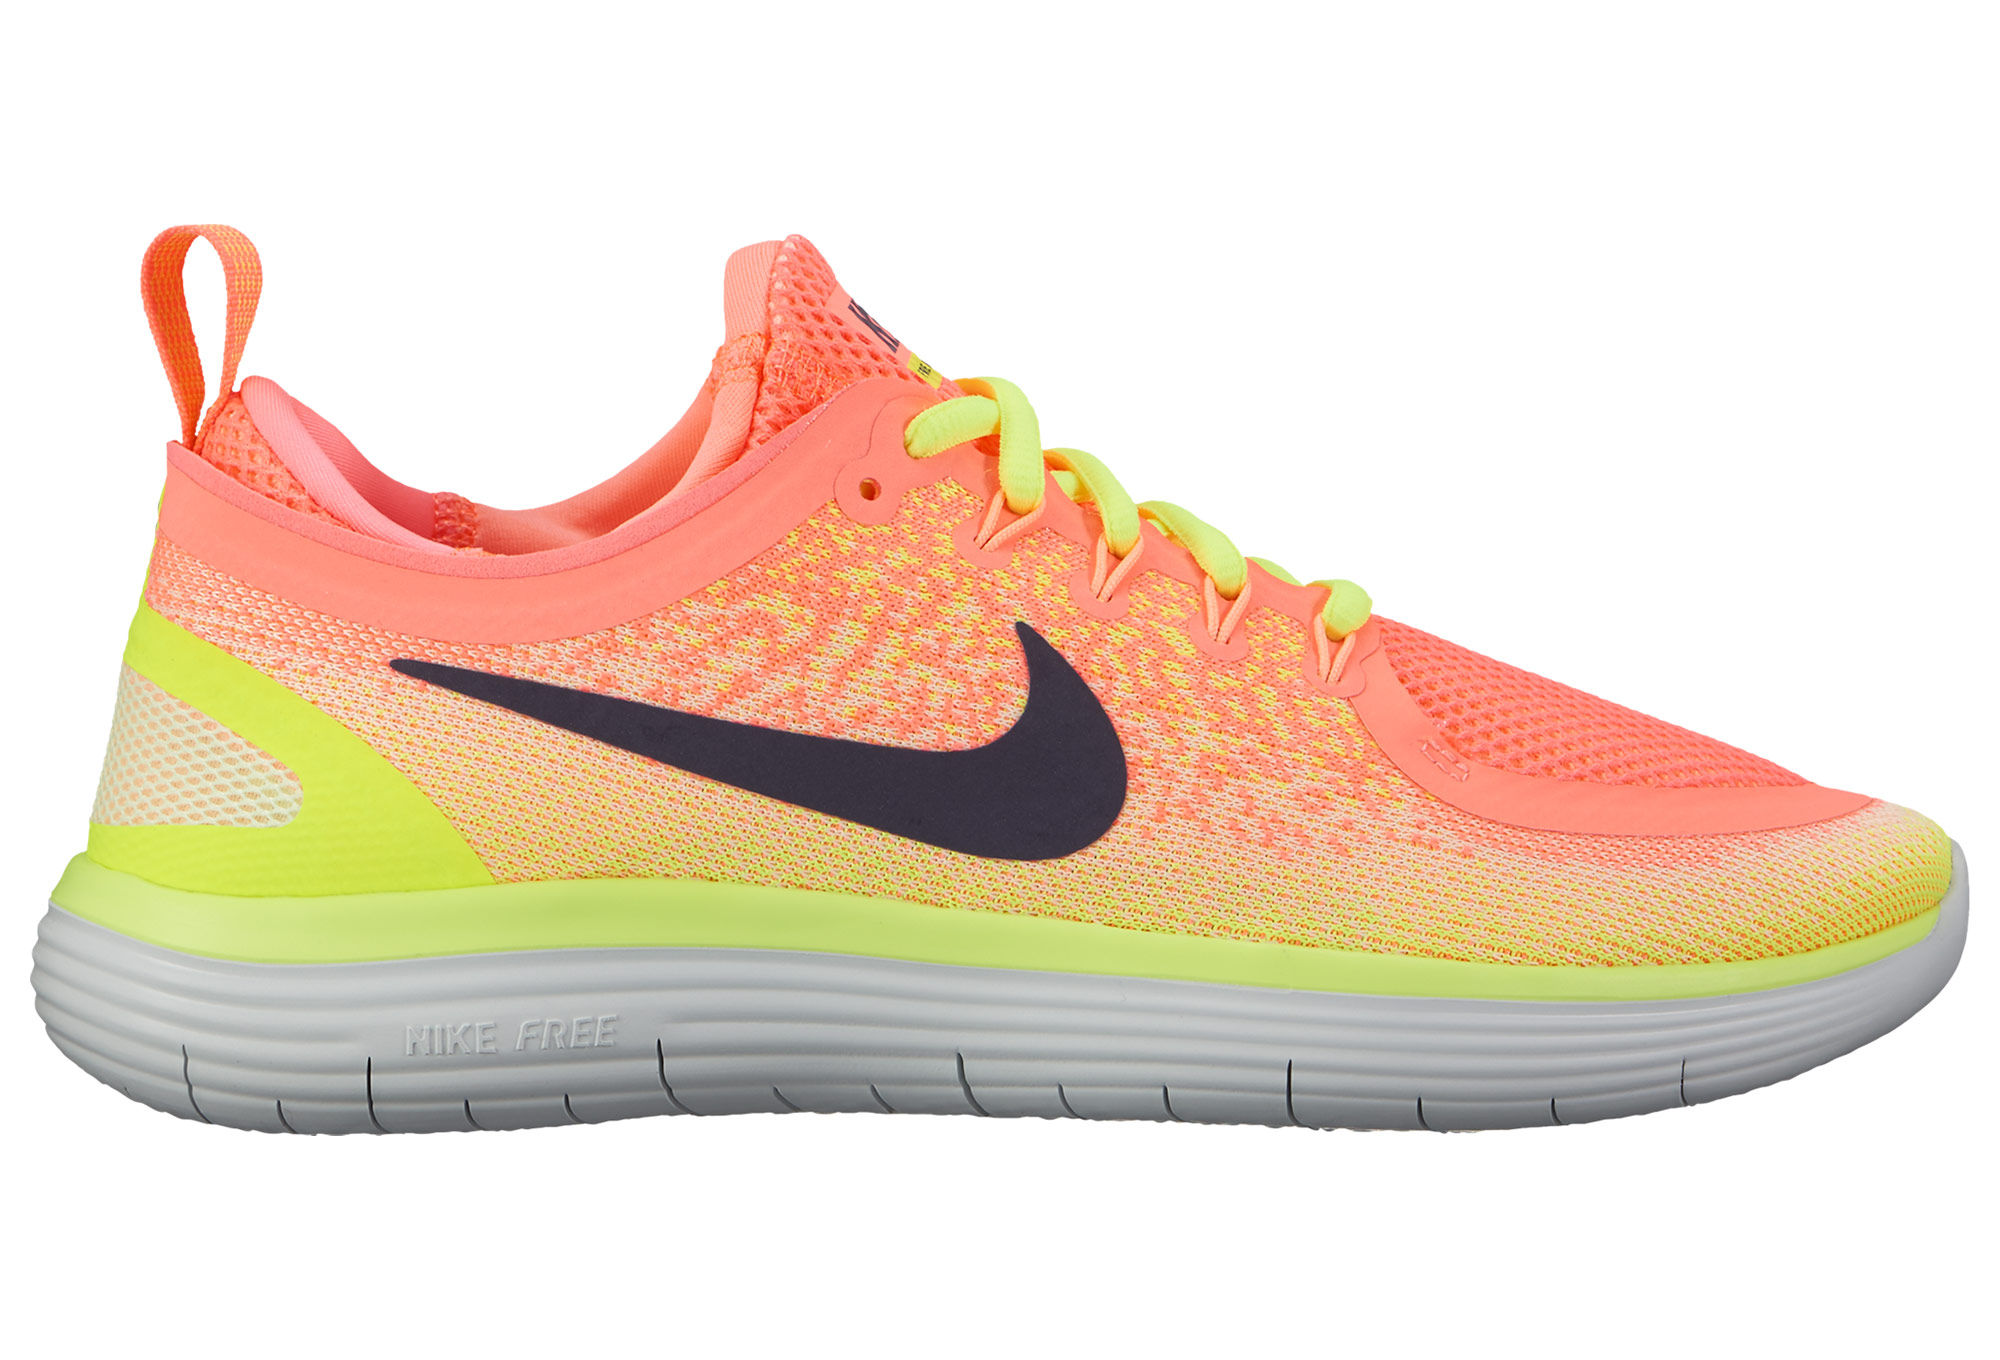 on sale b7423 05569 NIKE FREE RUN DISTANCE 2 Women s Shoes Pink Yellow